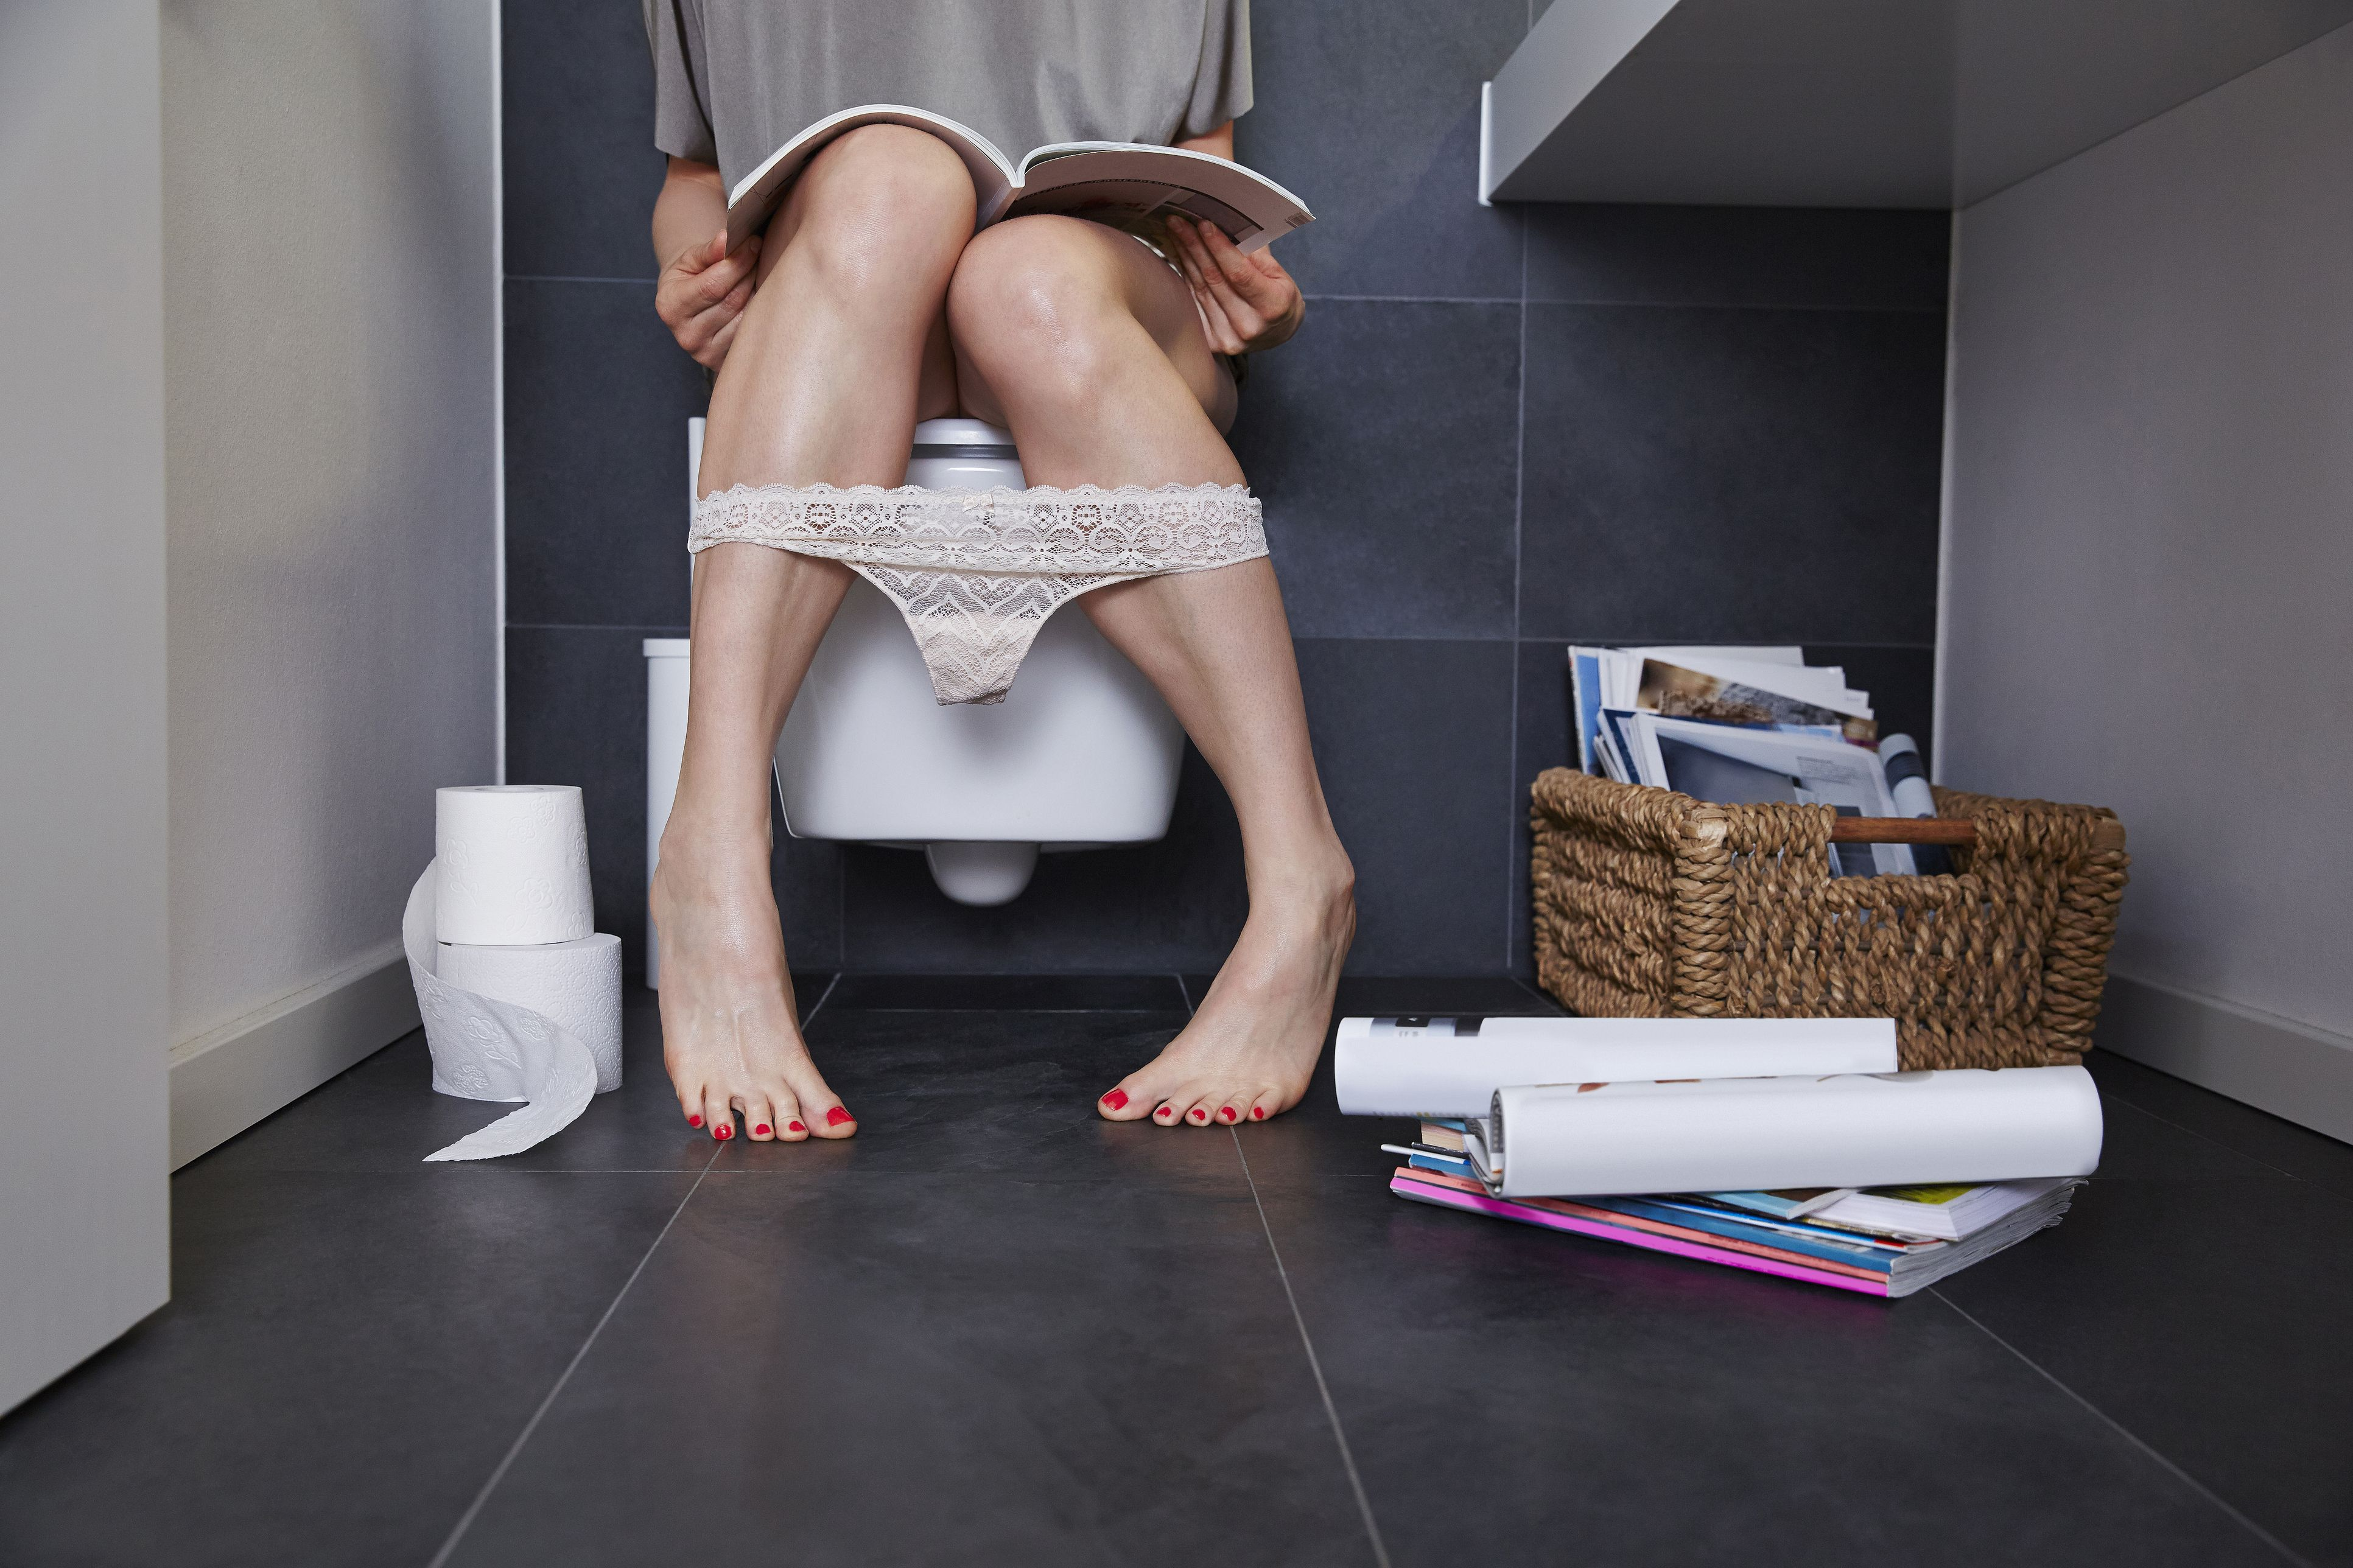 10 Reasons You Always Have to Pee